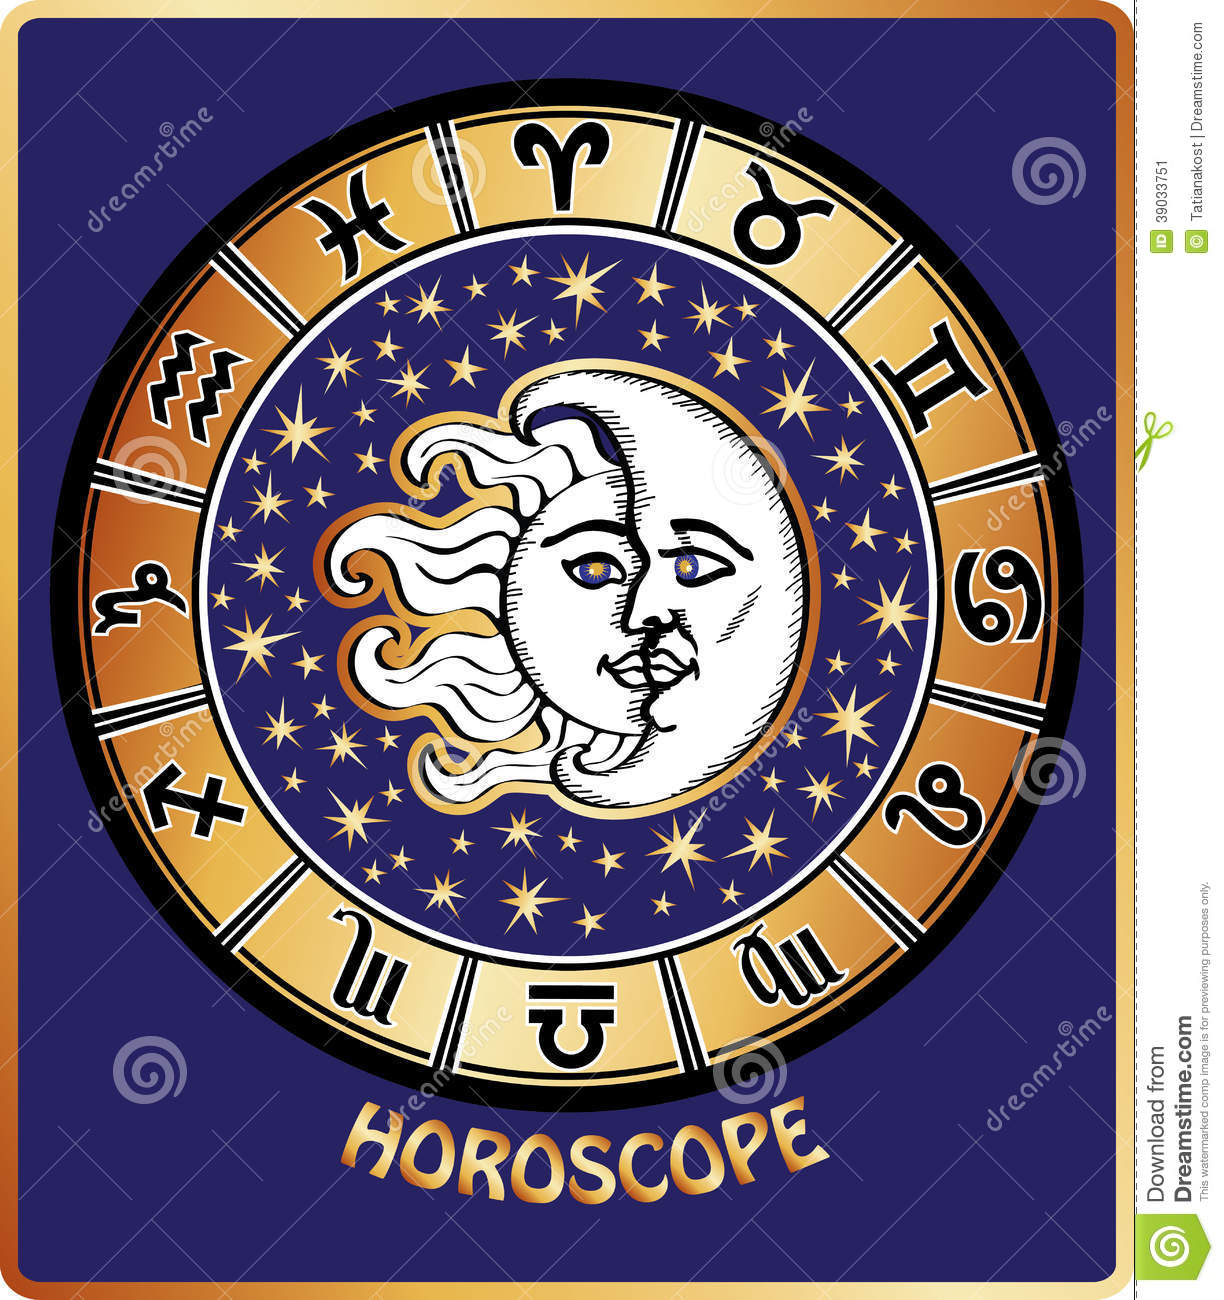 All zodiac sign in horoscope circlen and moon stock vector all zodiac sign in horoscope circlen and moon geenschuldenfo Image collections